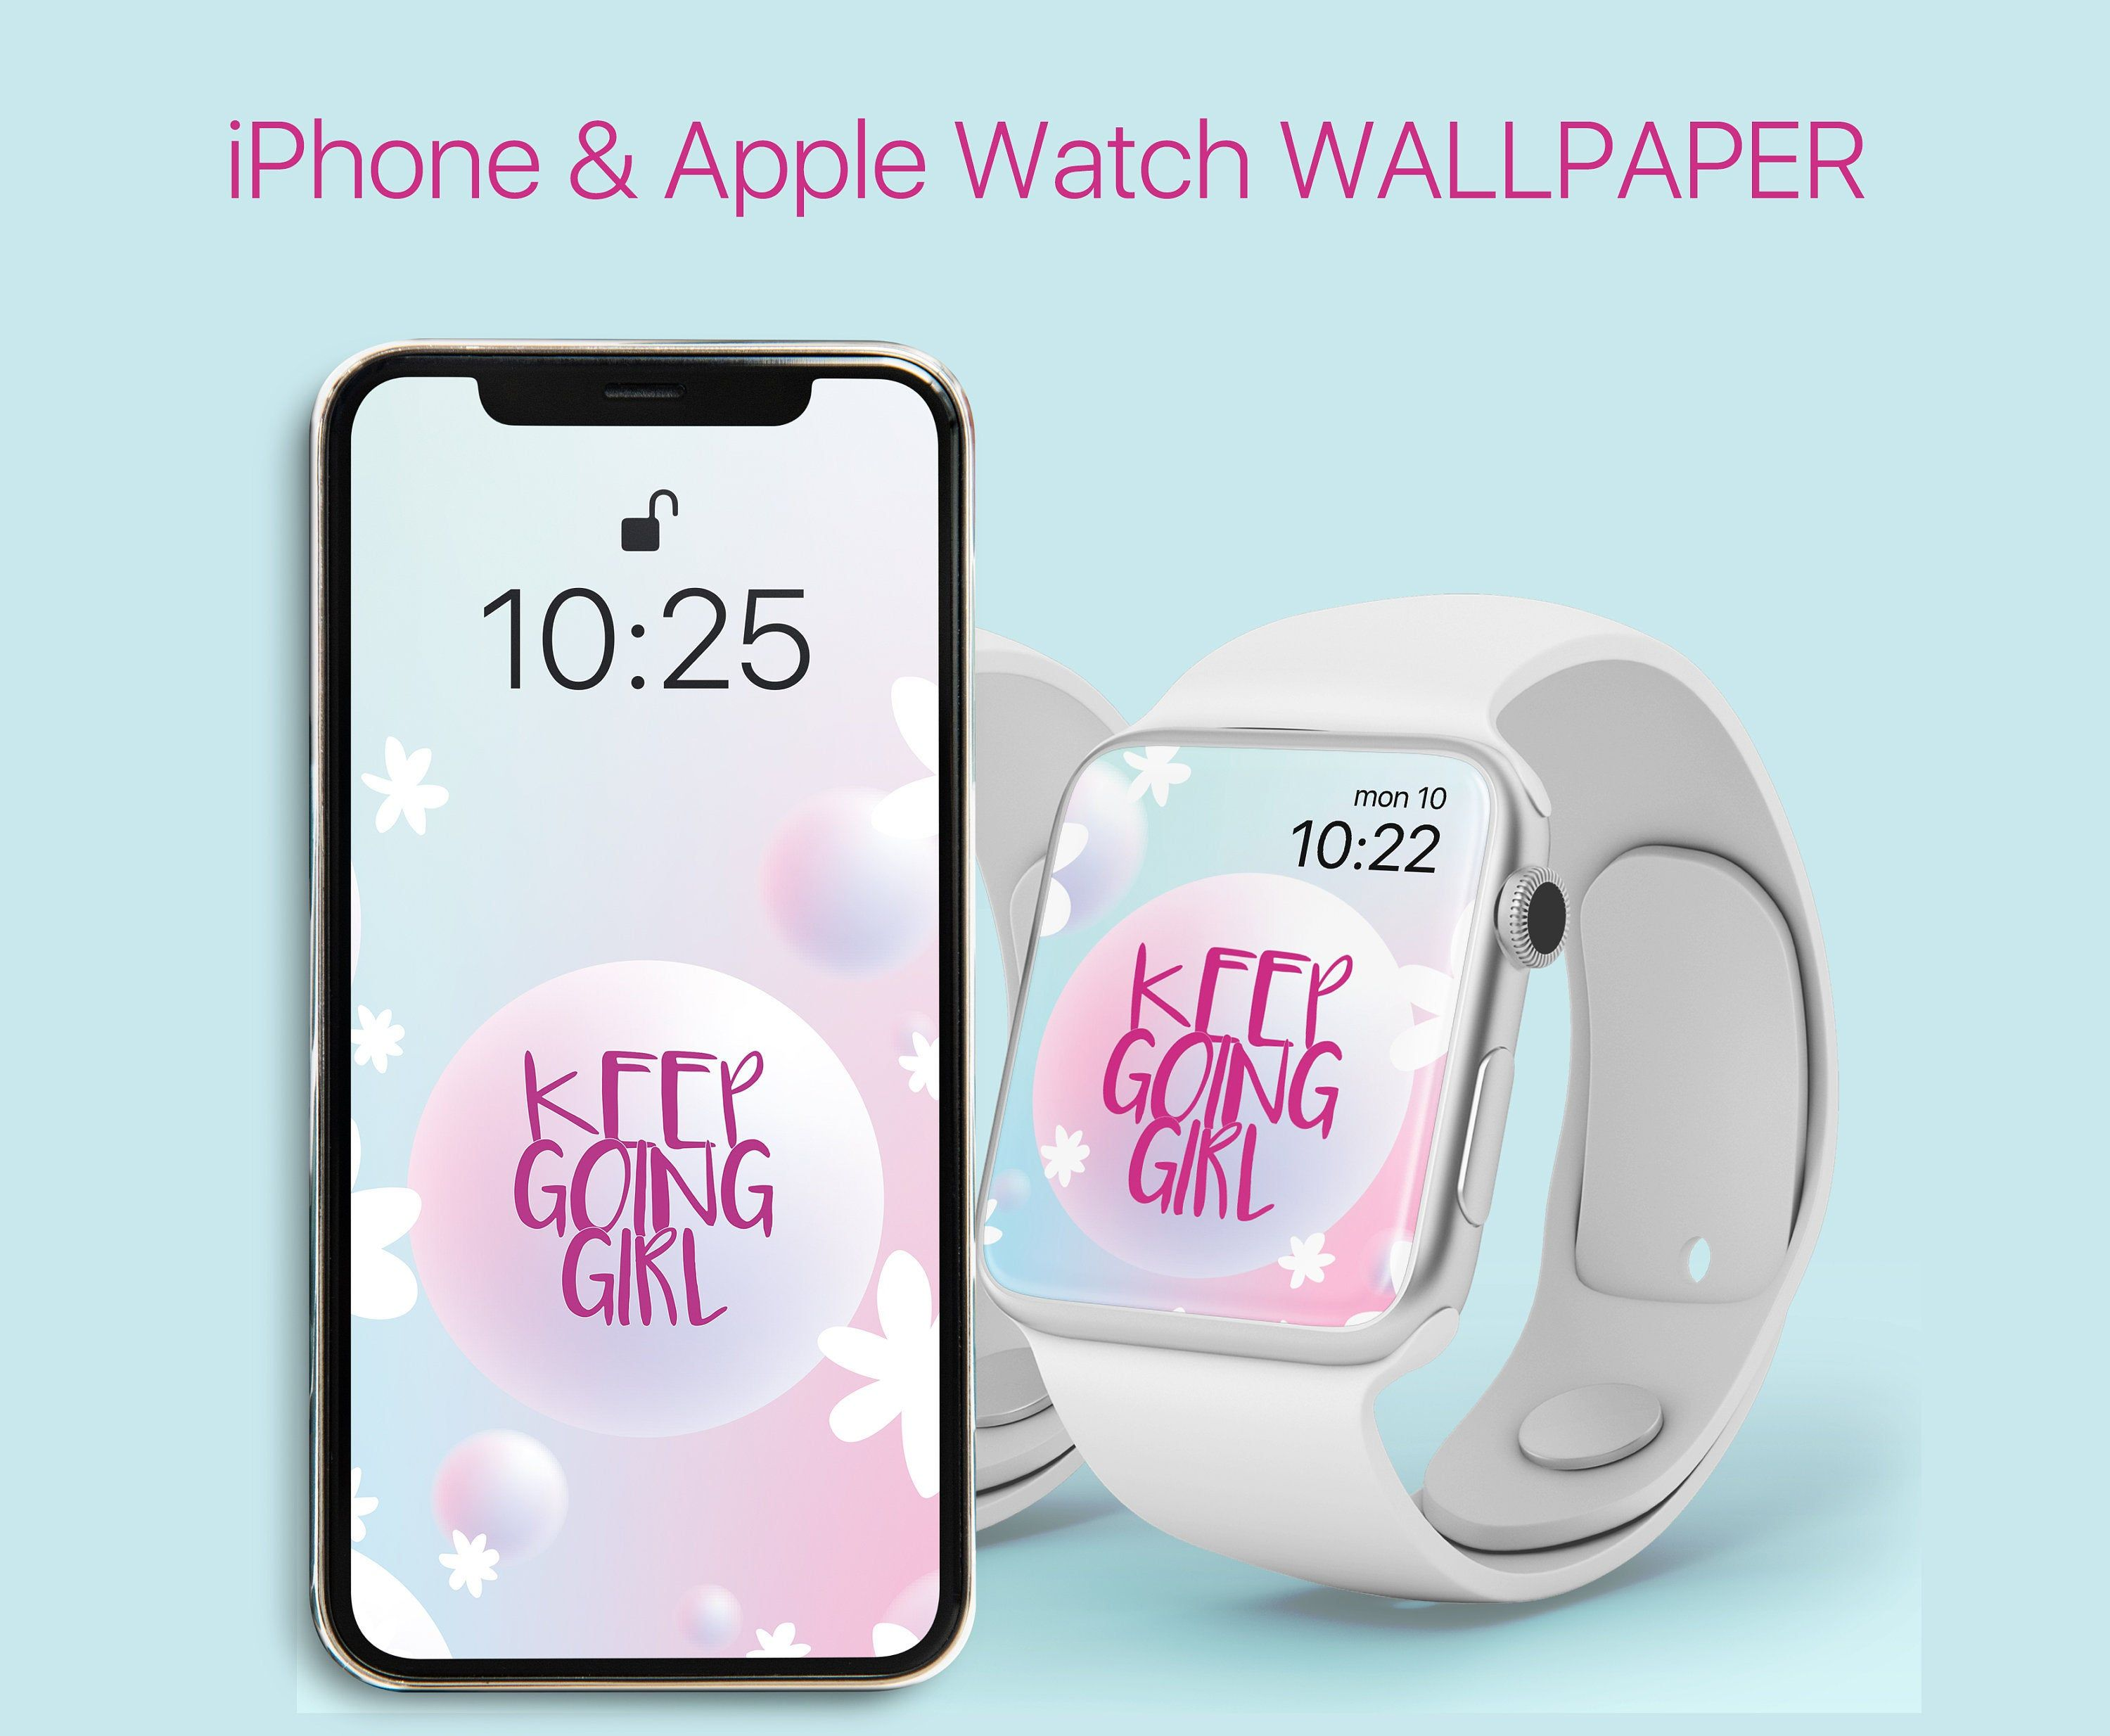 Phone And Apple Watch Wallpaper Inspirational Quote Keep Going Girl Digital Instant Download Iphone Backg Apple Watch Wallpaper Apple Watch Faces Apple Watch Iphone apple watch face wallpaper hd